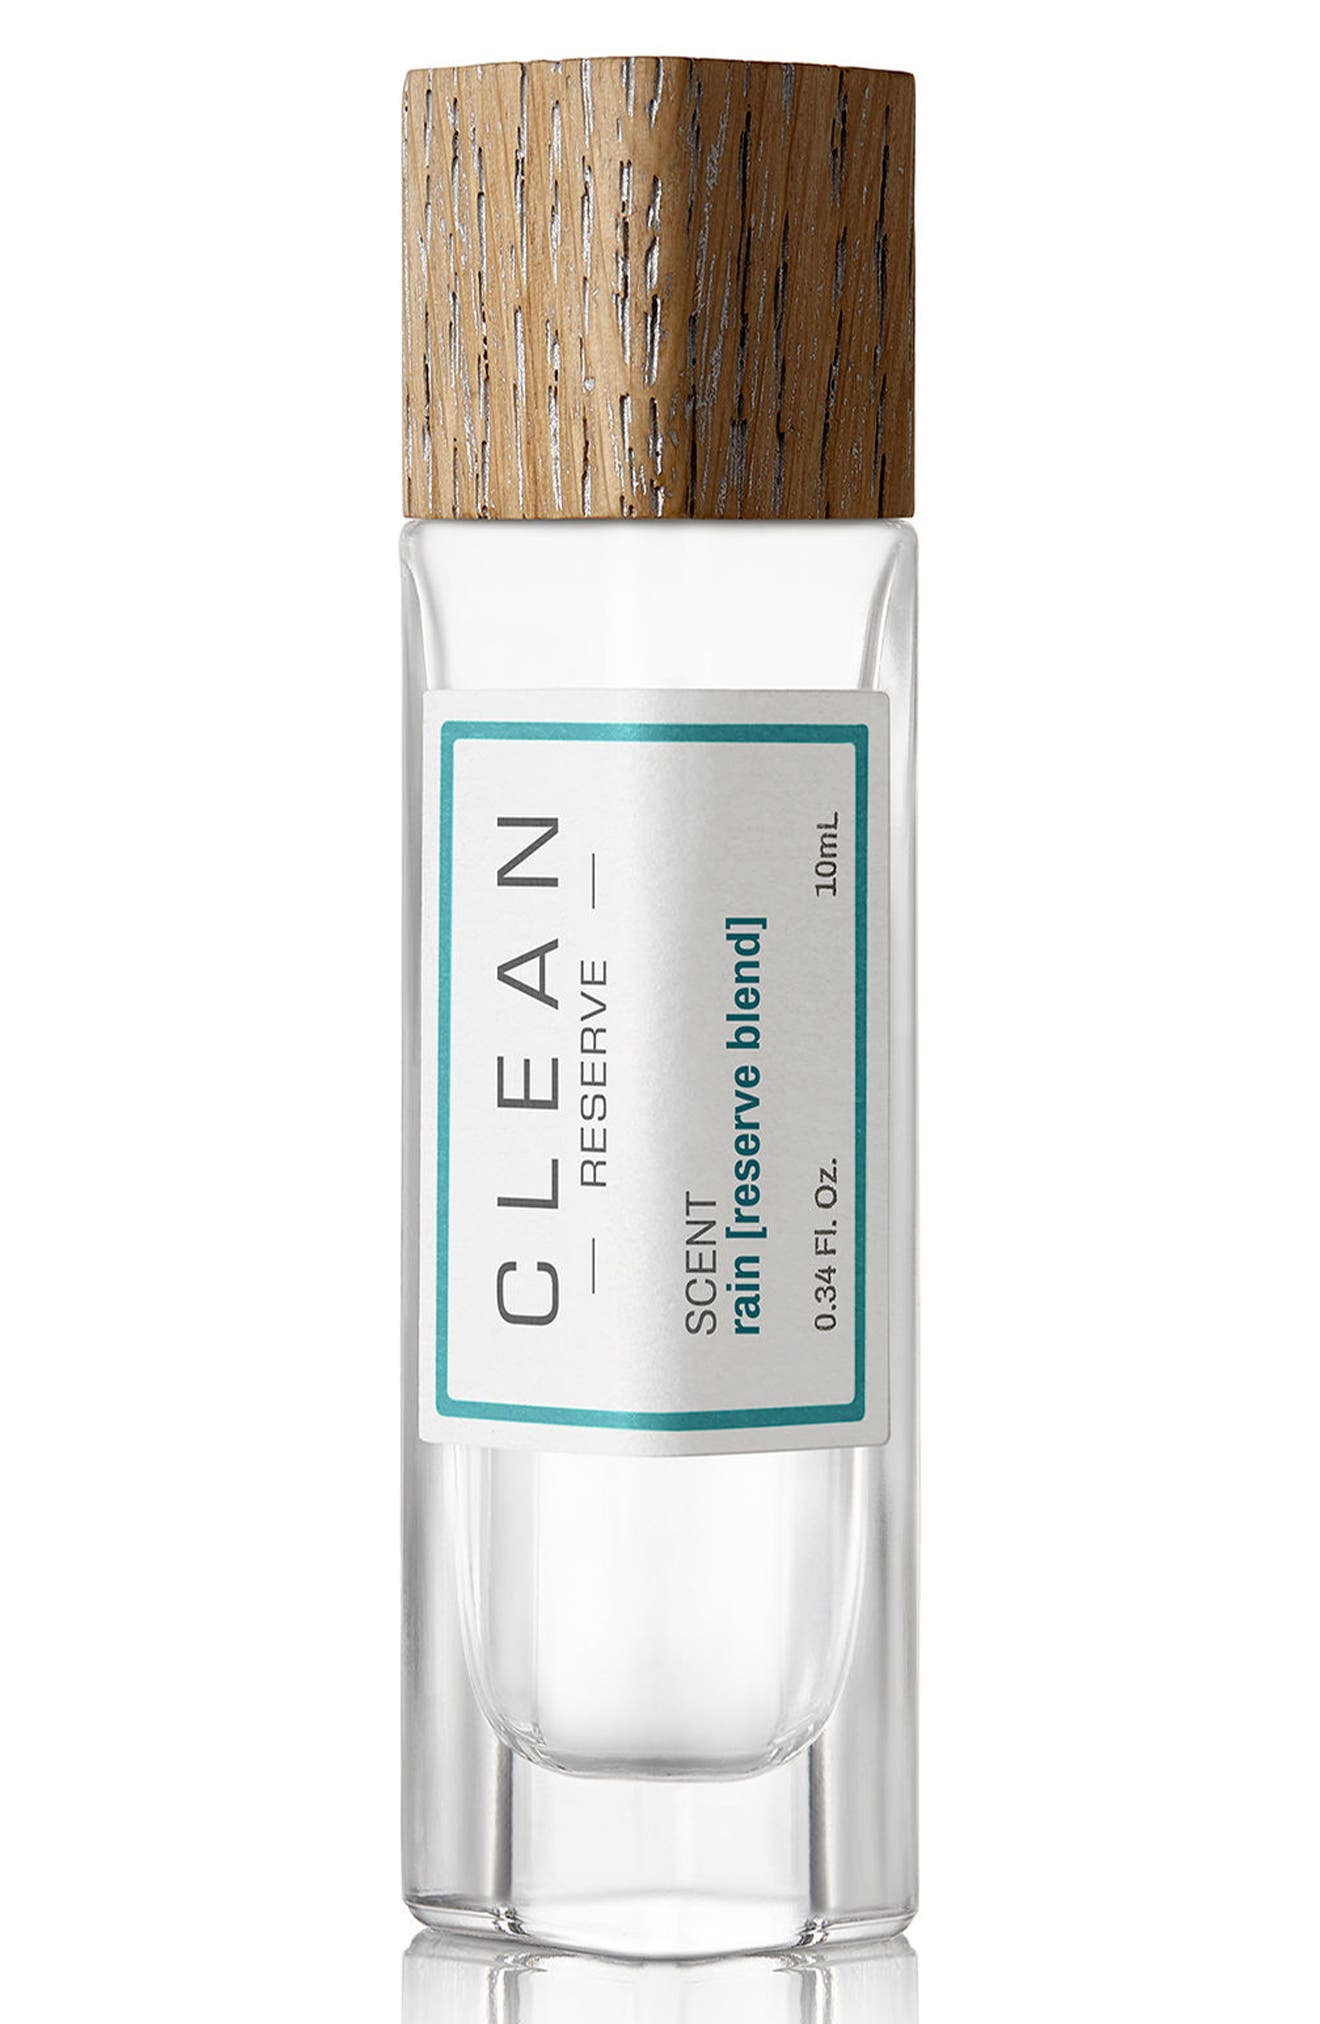 Clean Reserve Reserve Blend Rain Pen Spray